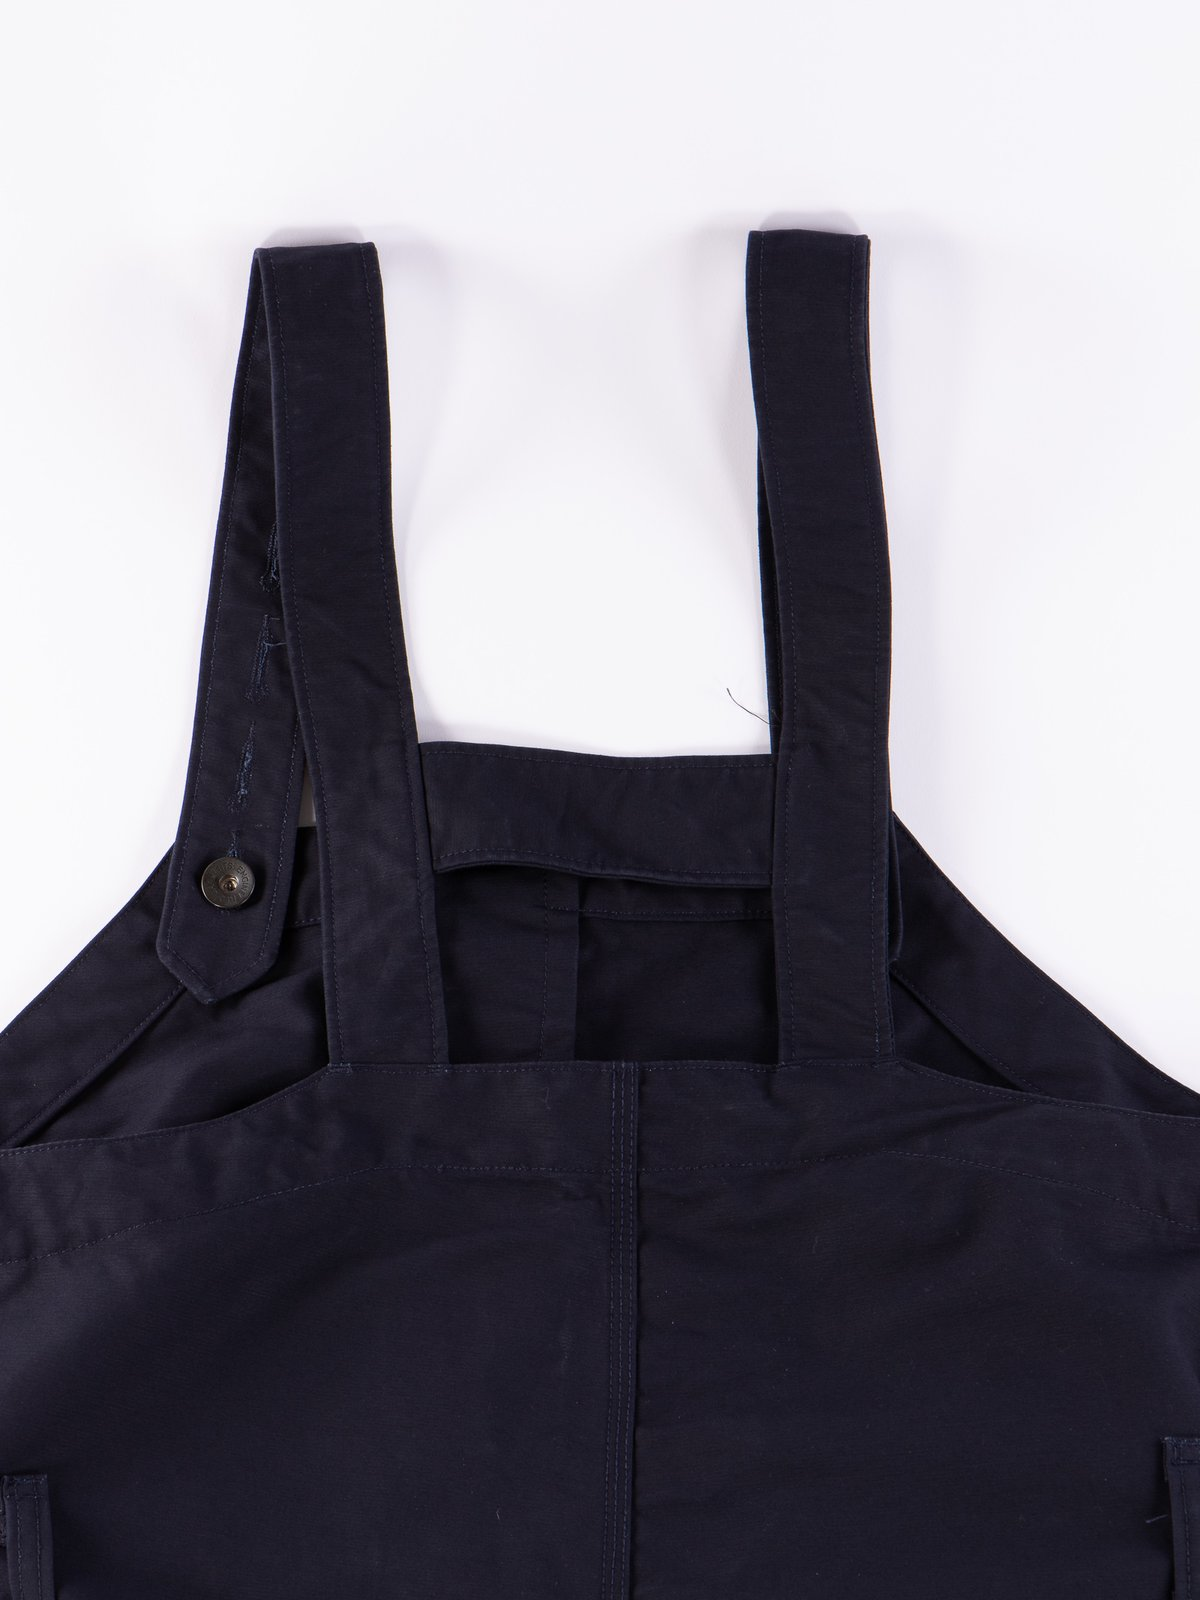 Navy Cotton Double Cloth Waders - Image 7